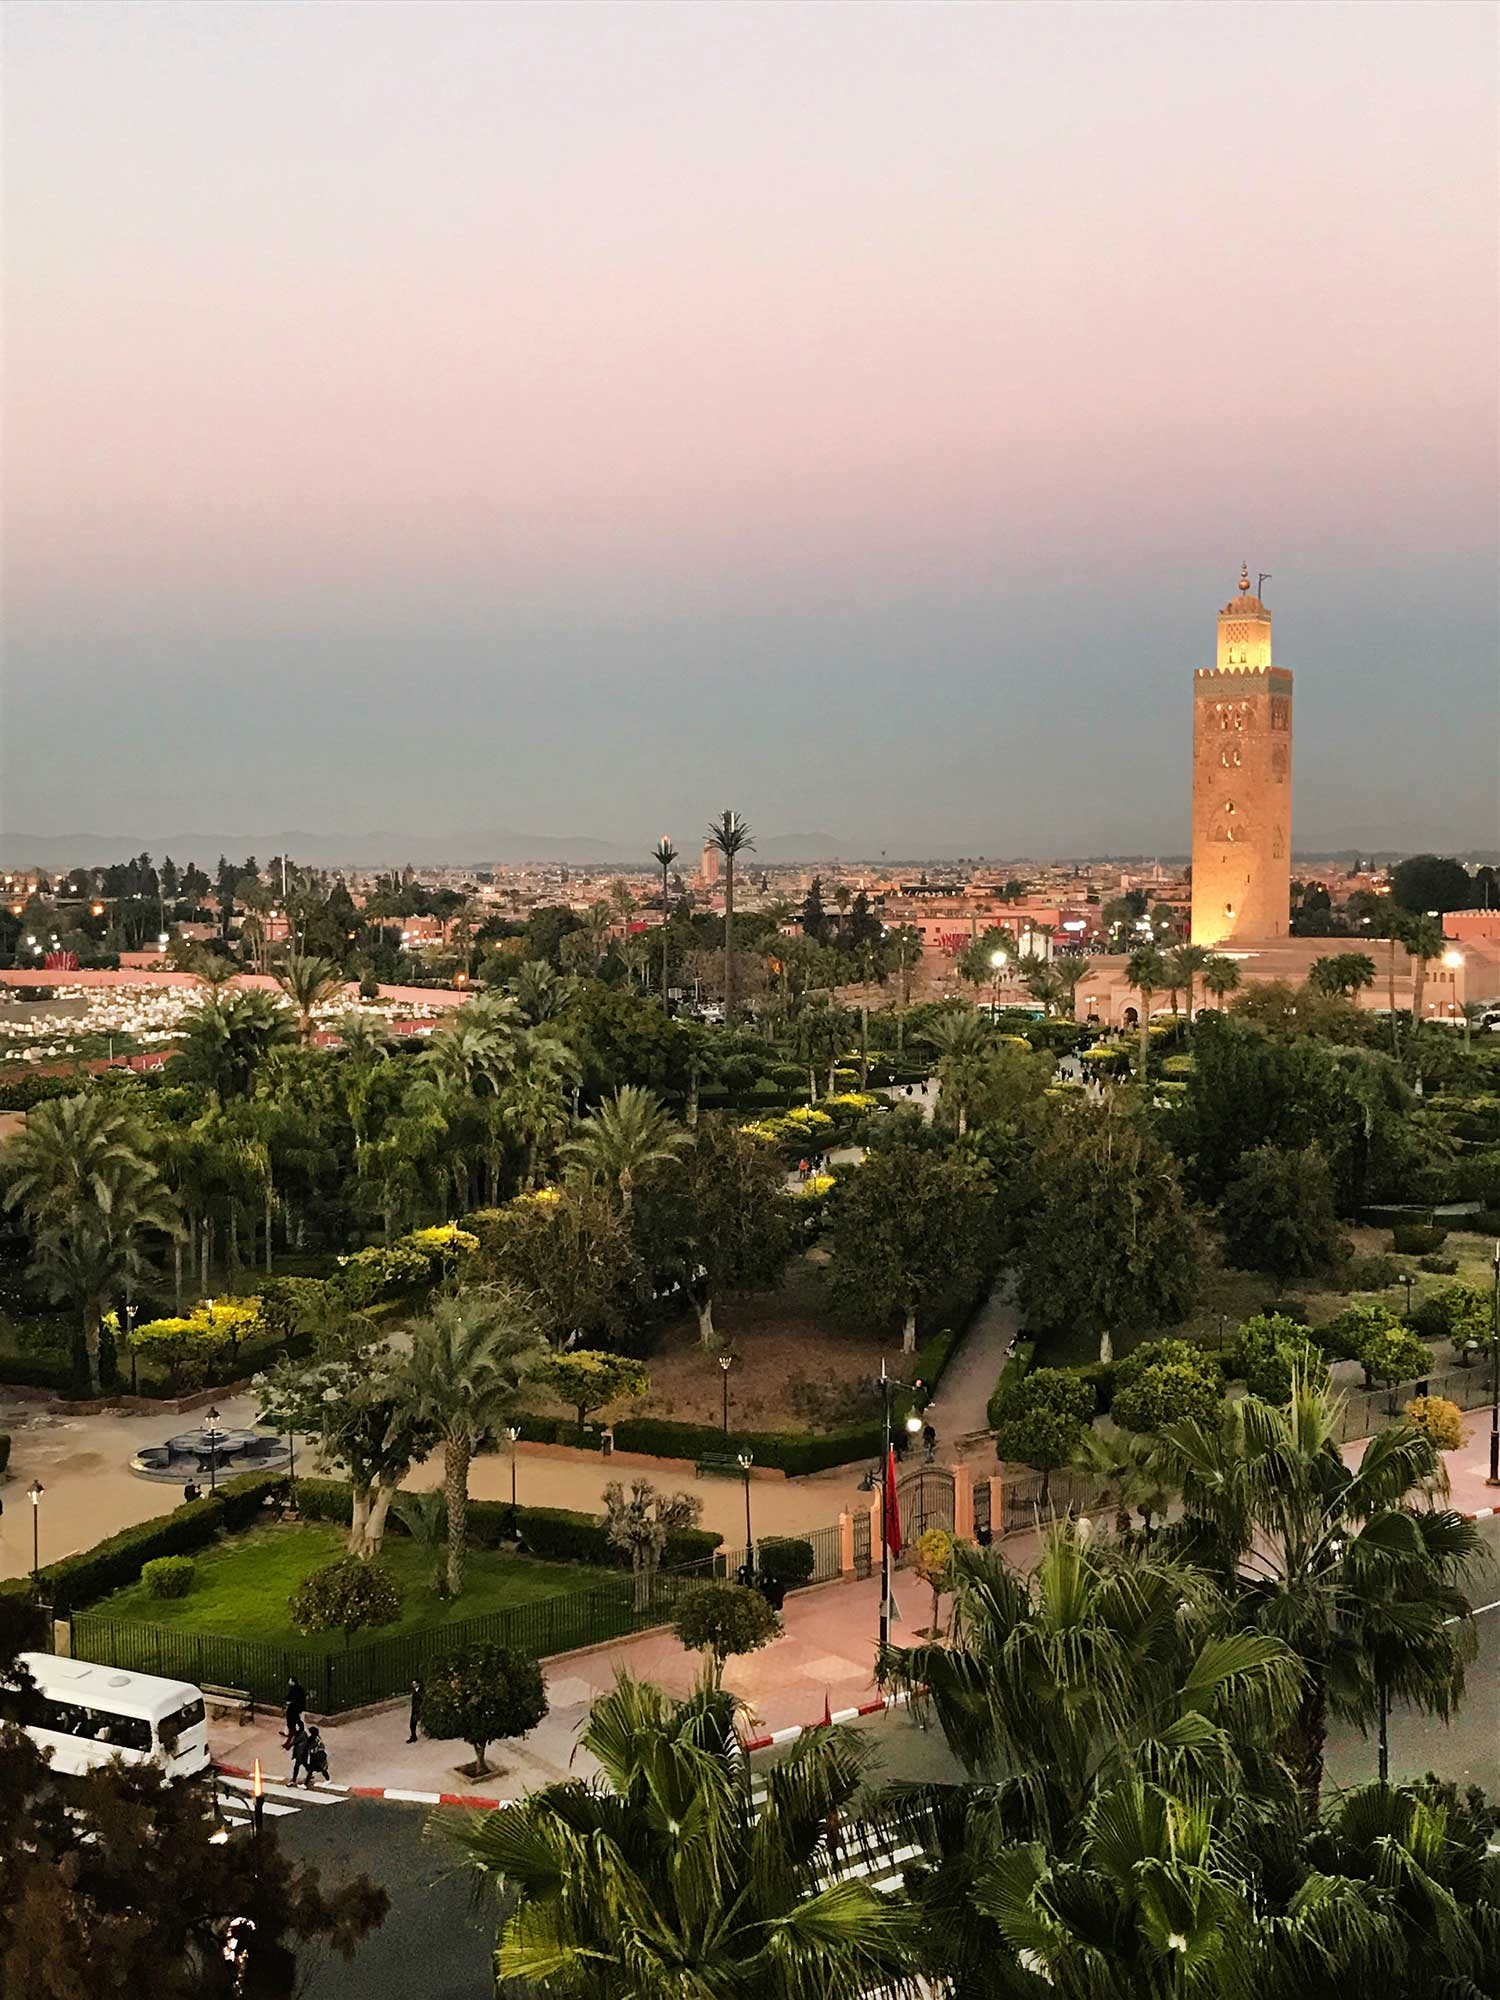 The sunset over Marrakech leaves the sky in ombre hues